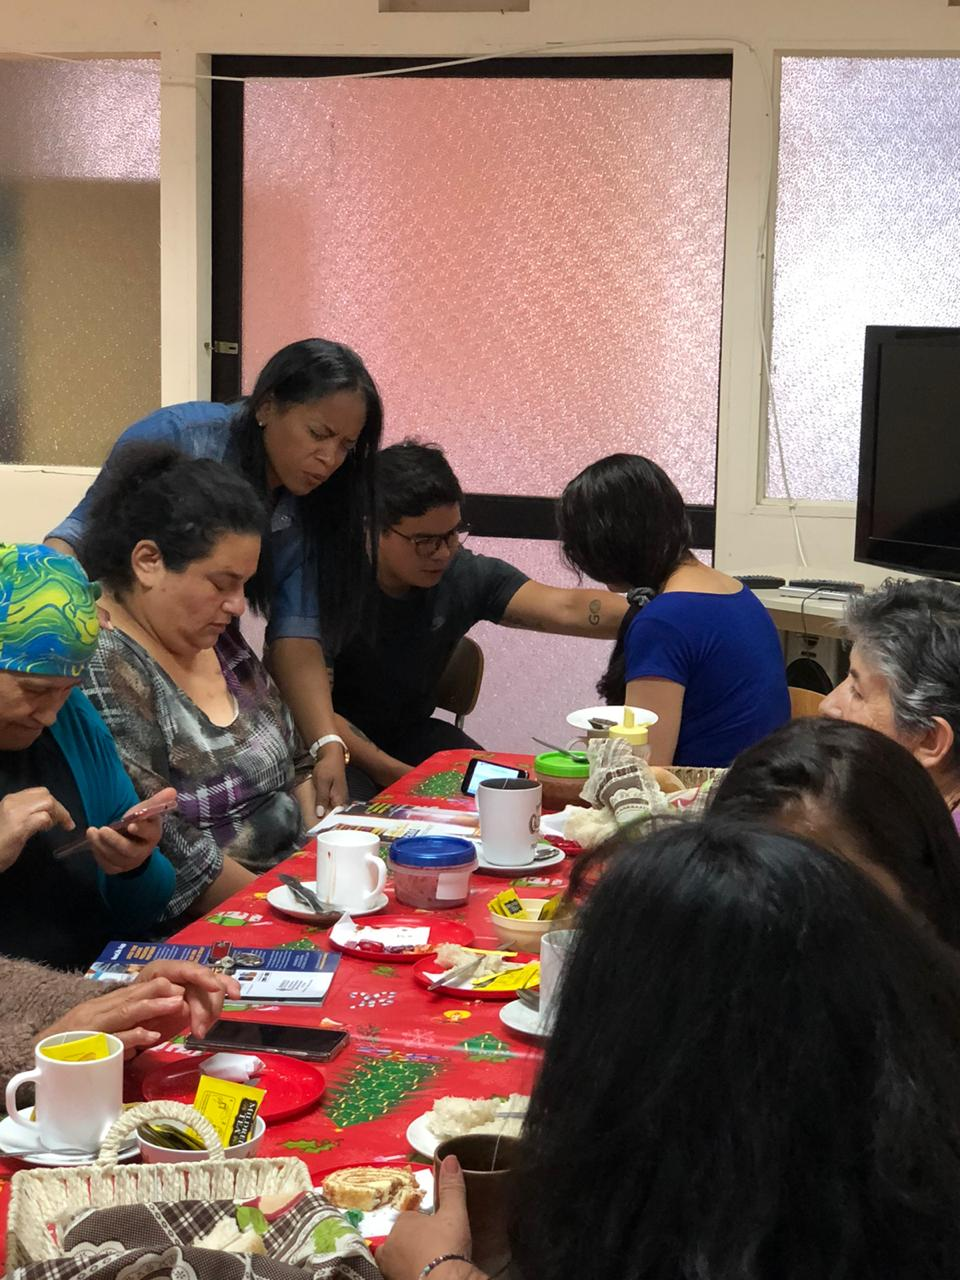 GYLF AMBASSADORS REACHED OUT TO CANCER PATIENTS IN VALPARAISO, CHILE